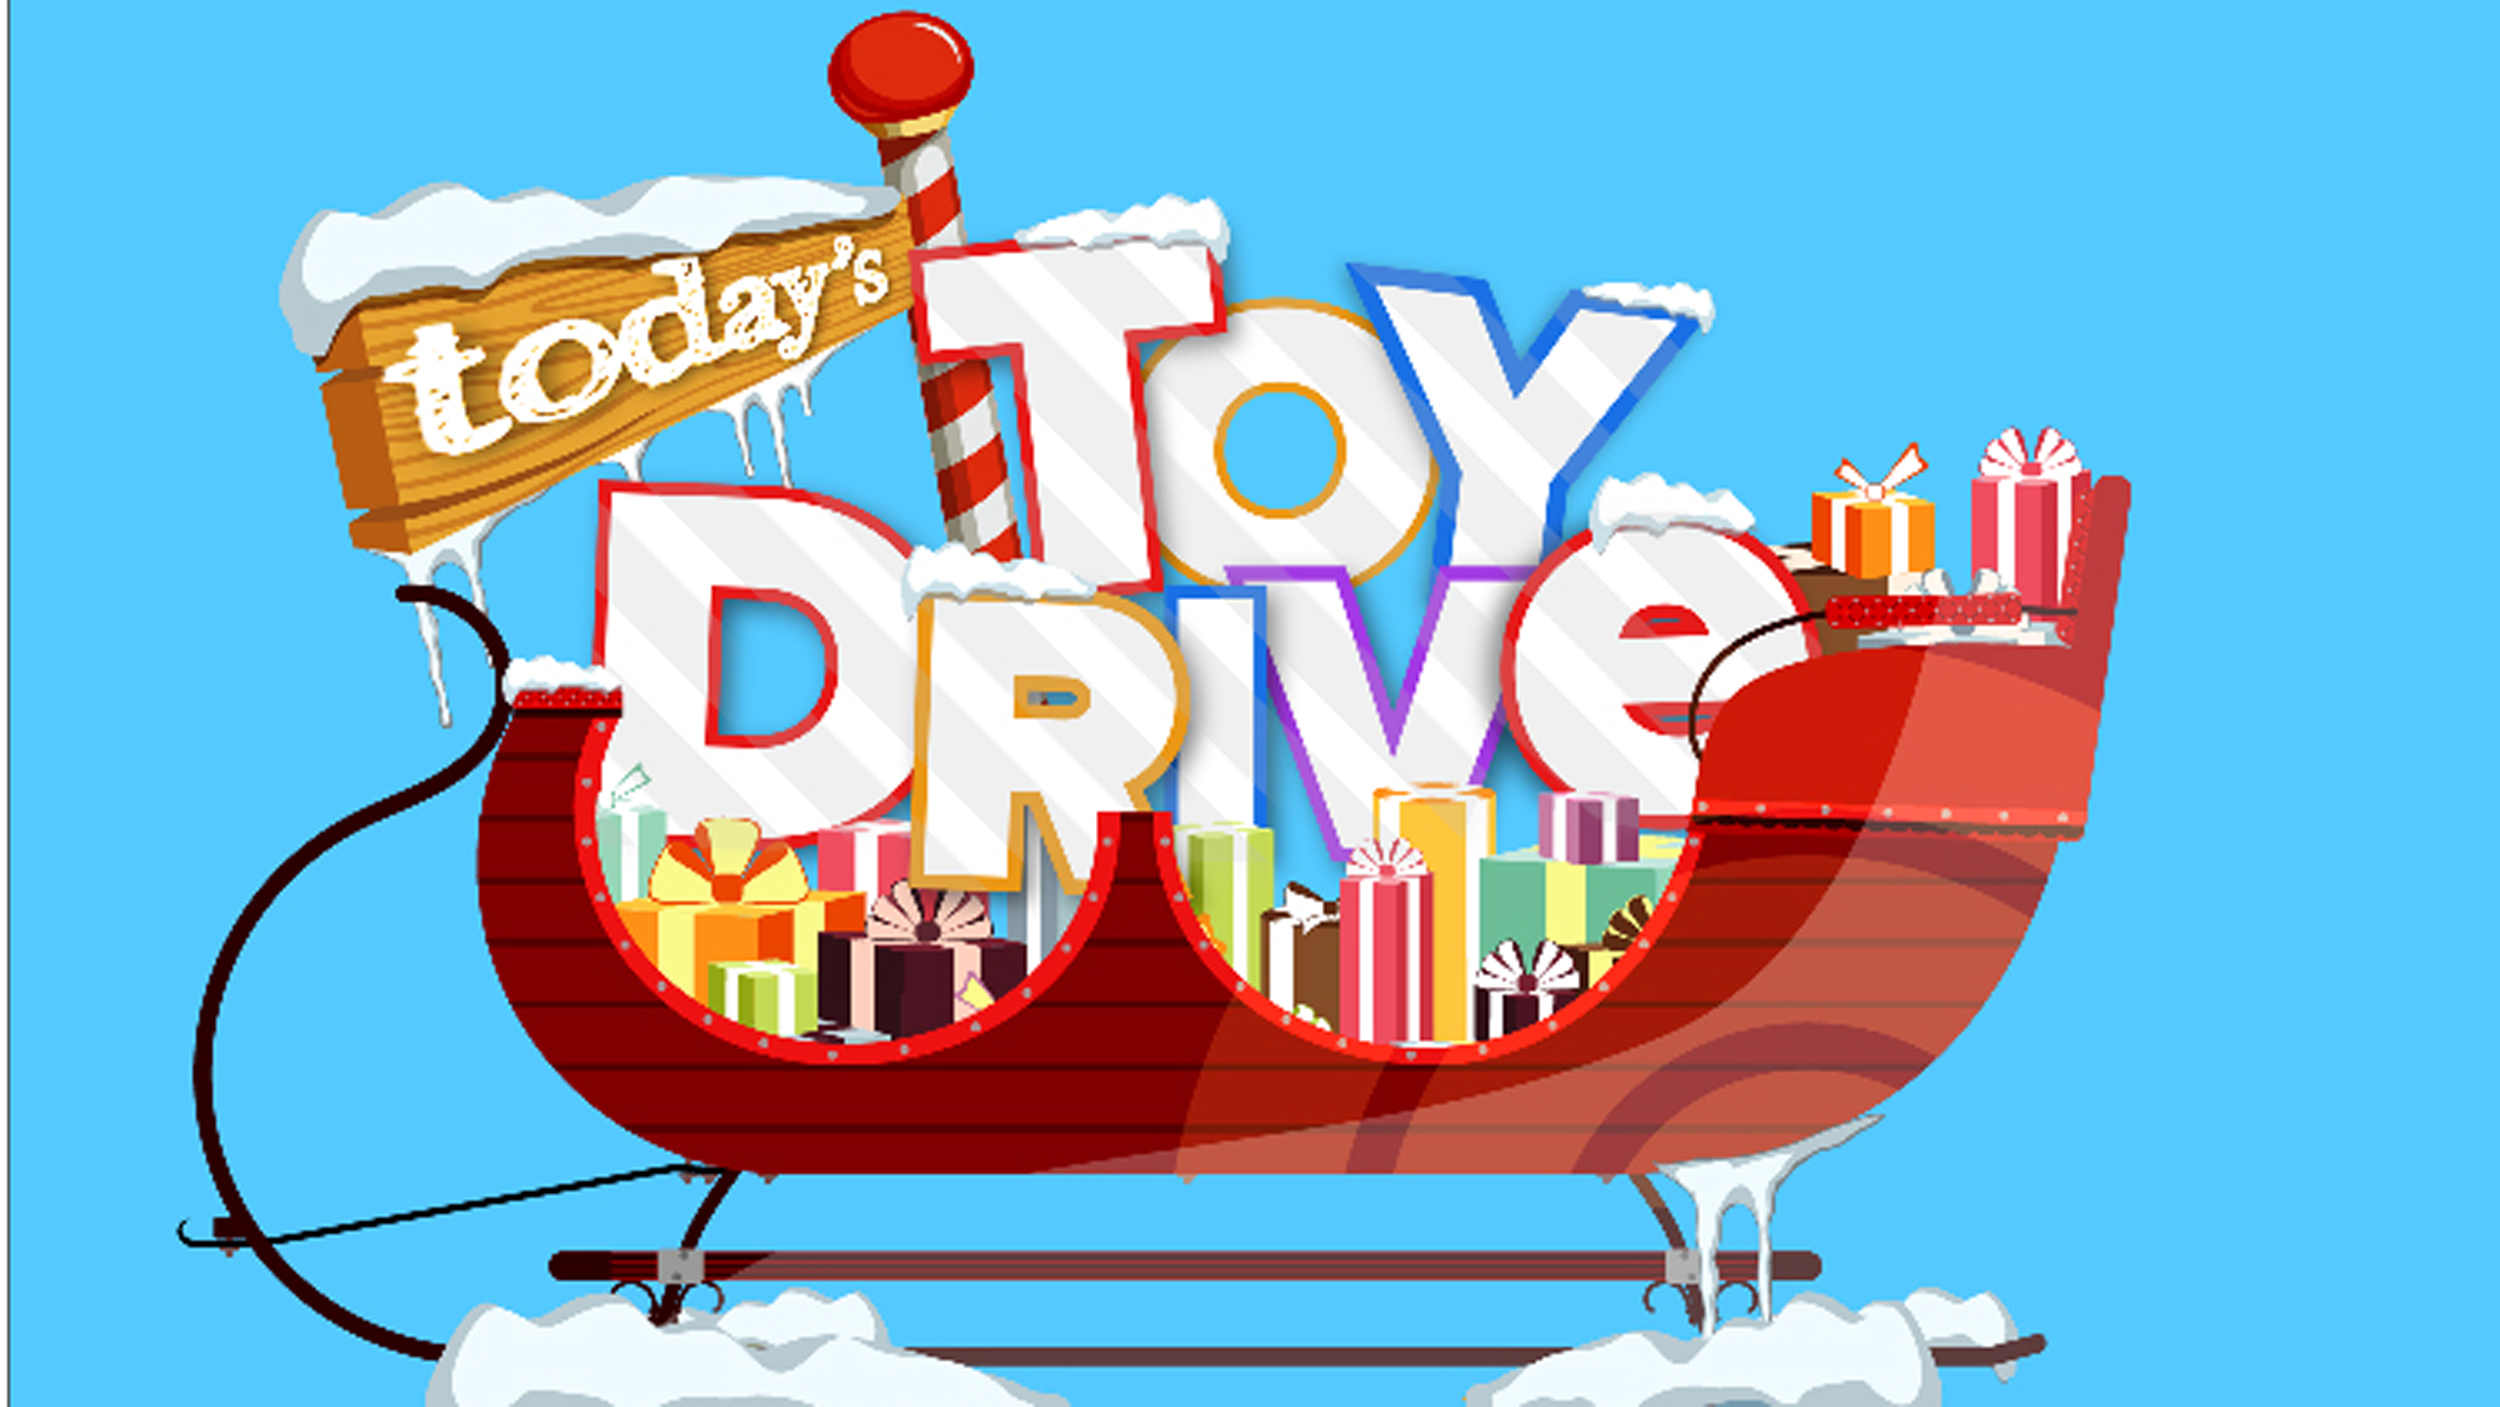 Toy Drive Clip Art : Today s st annual toy drive make holidays sparkle for